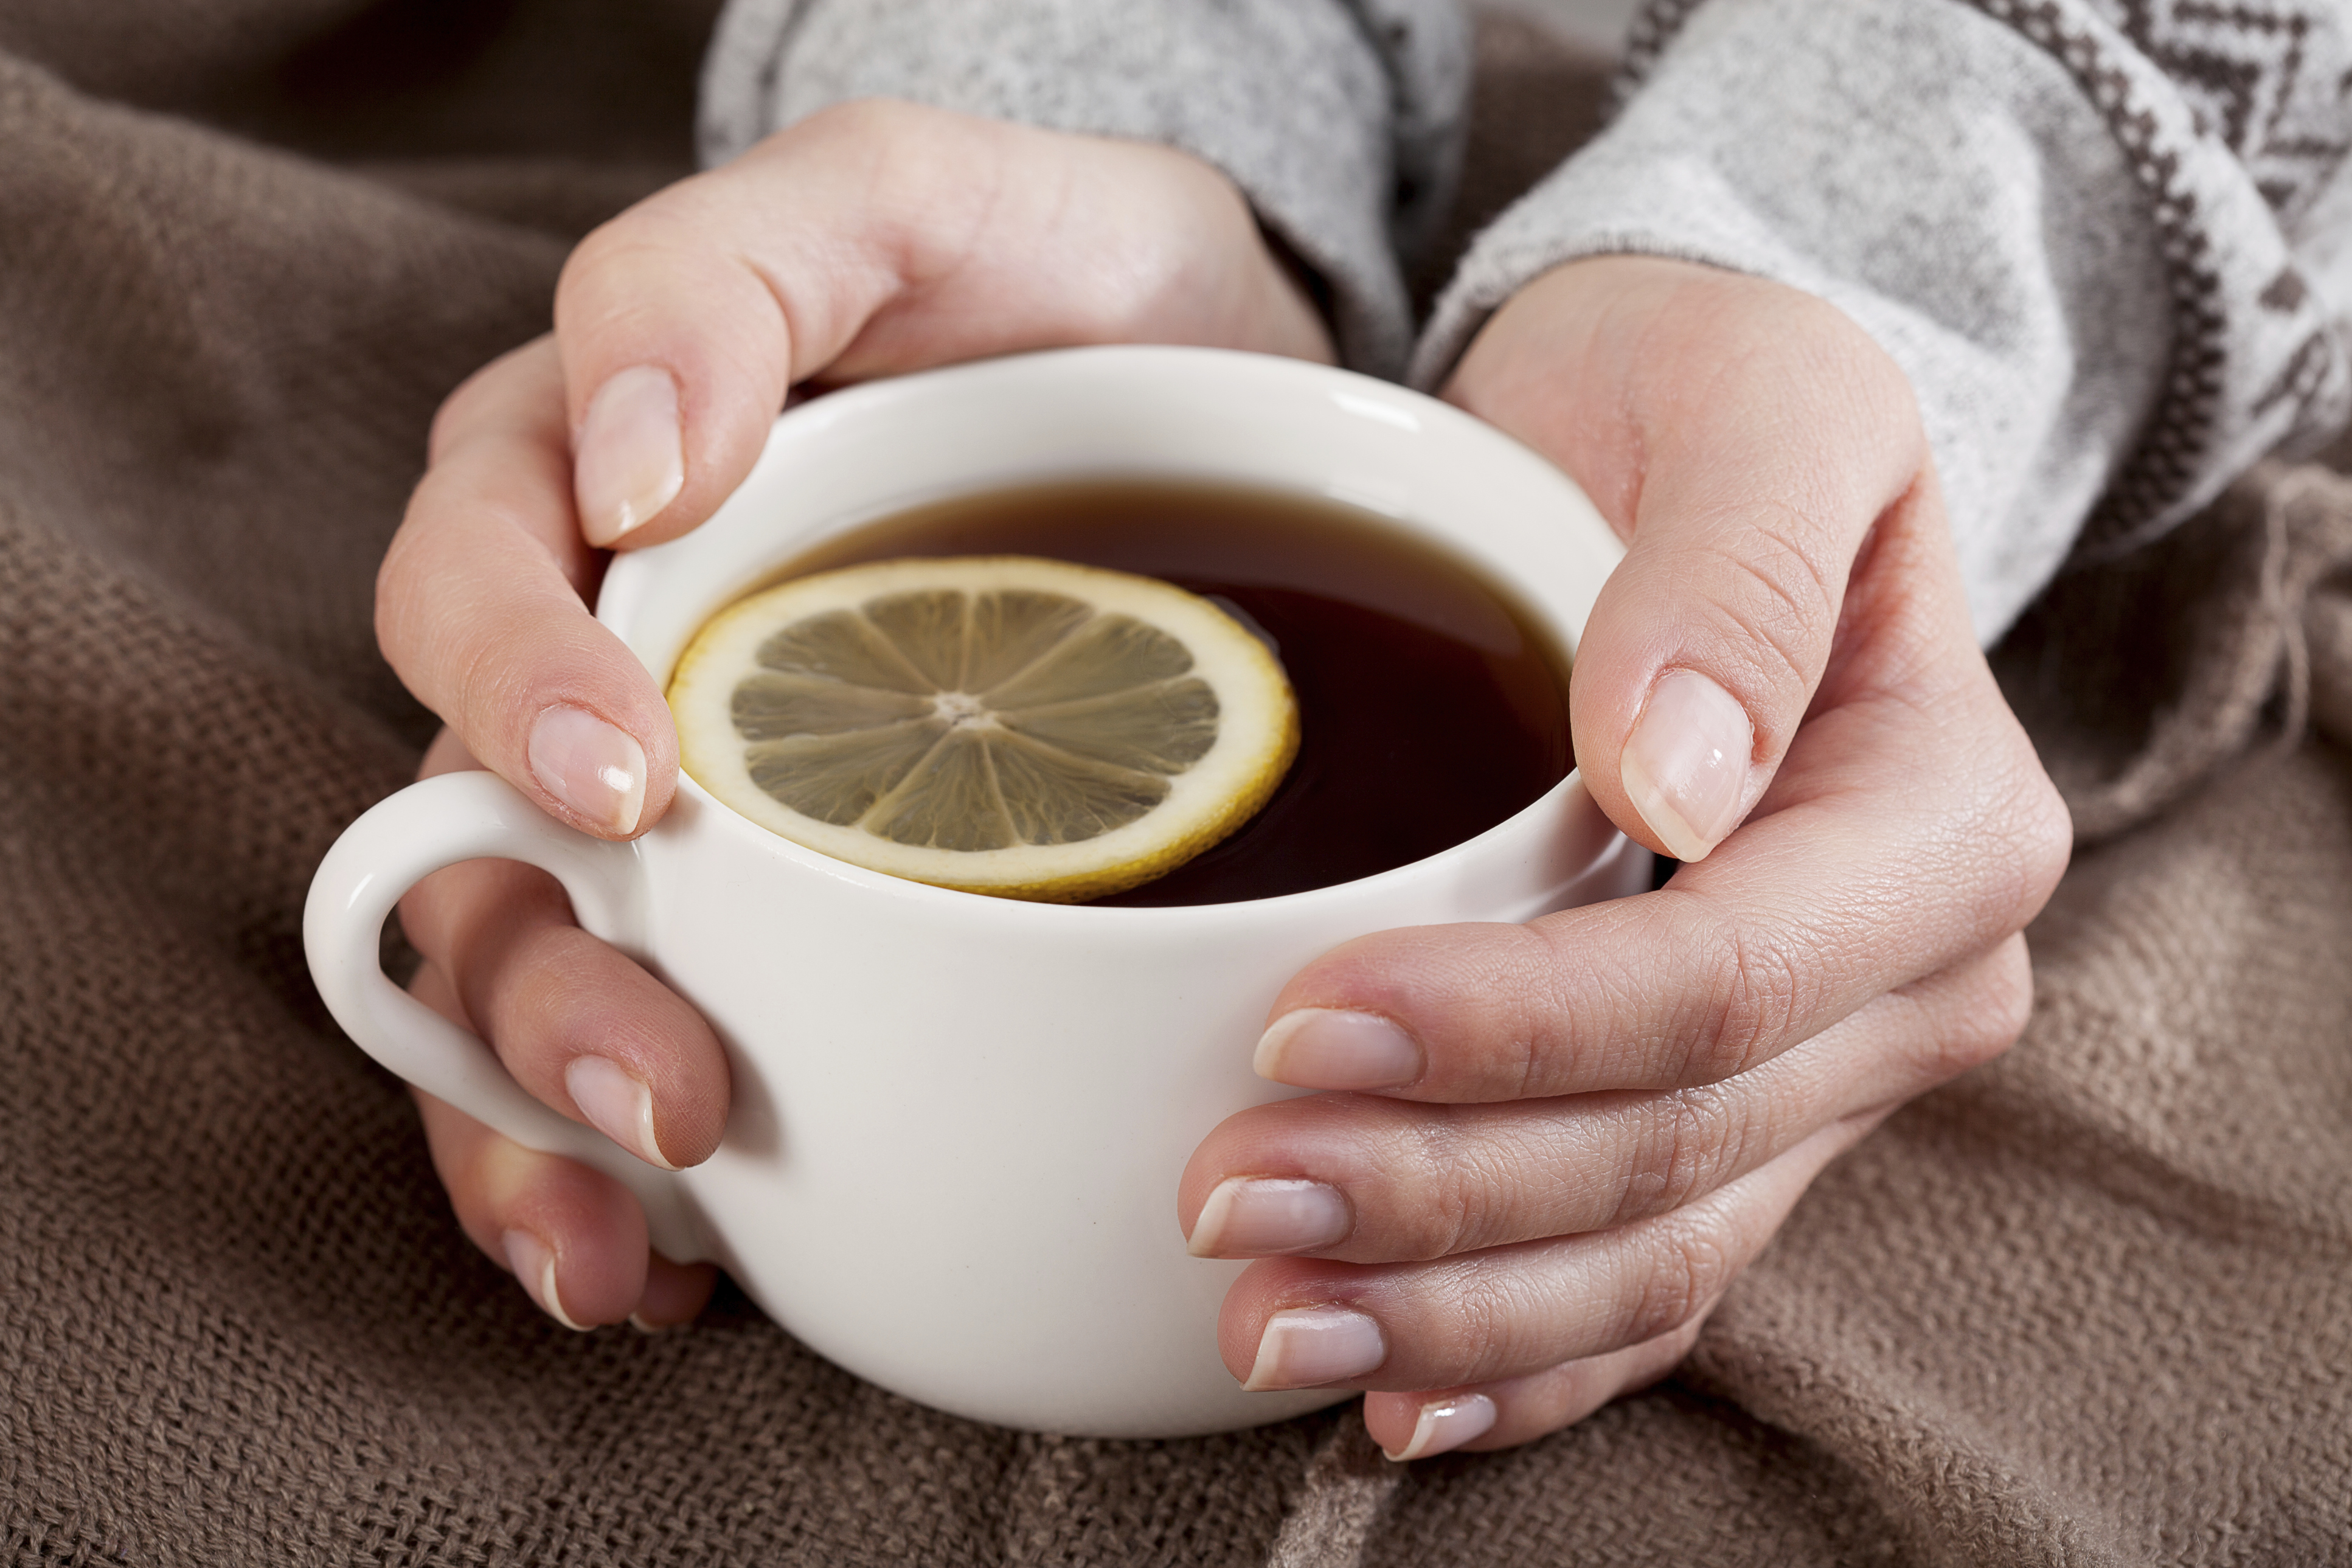 hands with tea and lemon